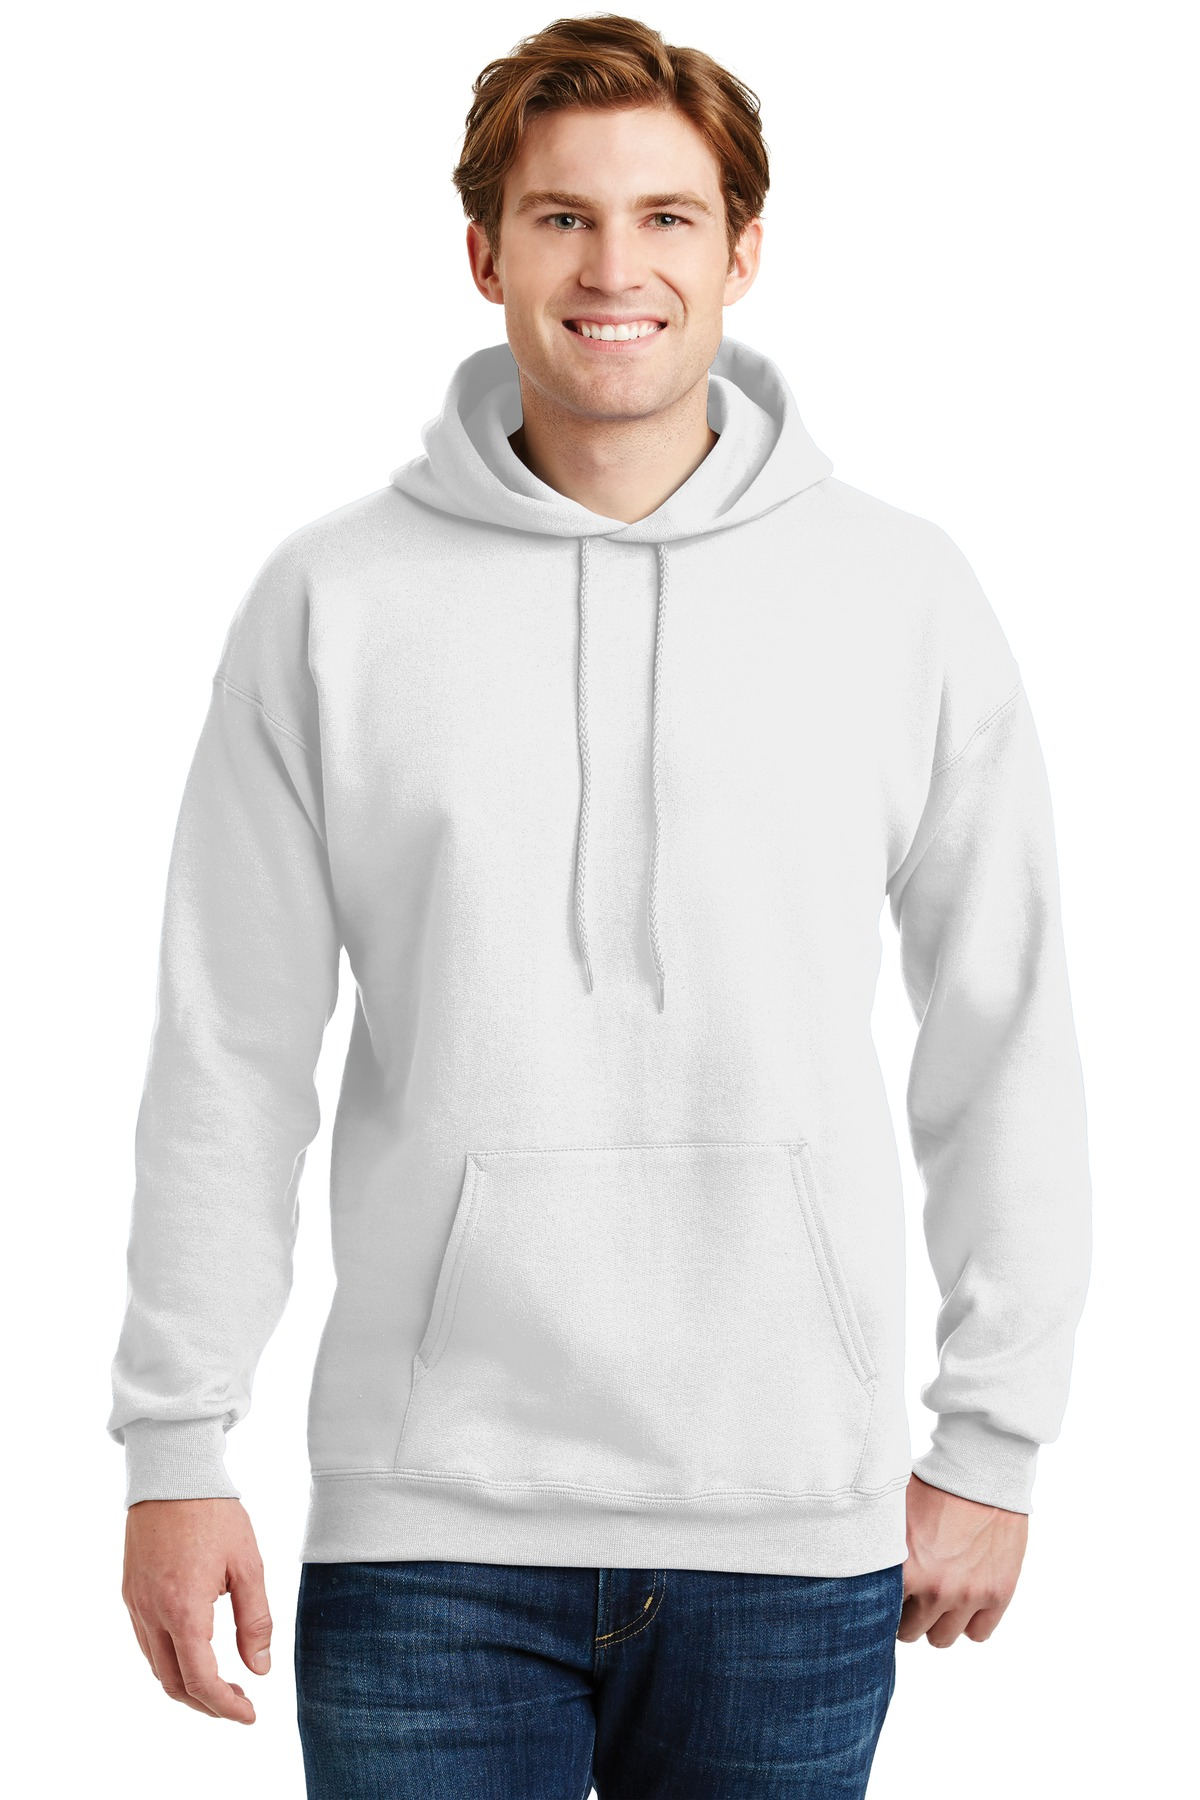 Hanes ®  Ultimate Cotton ®  - Pullover Hooded Sweatshirt.  F170 - White